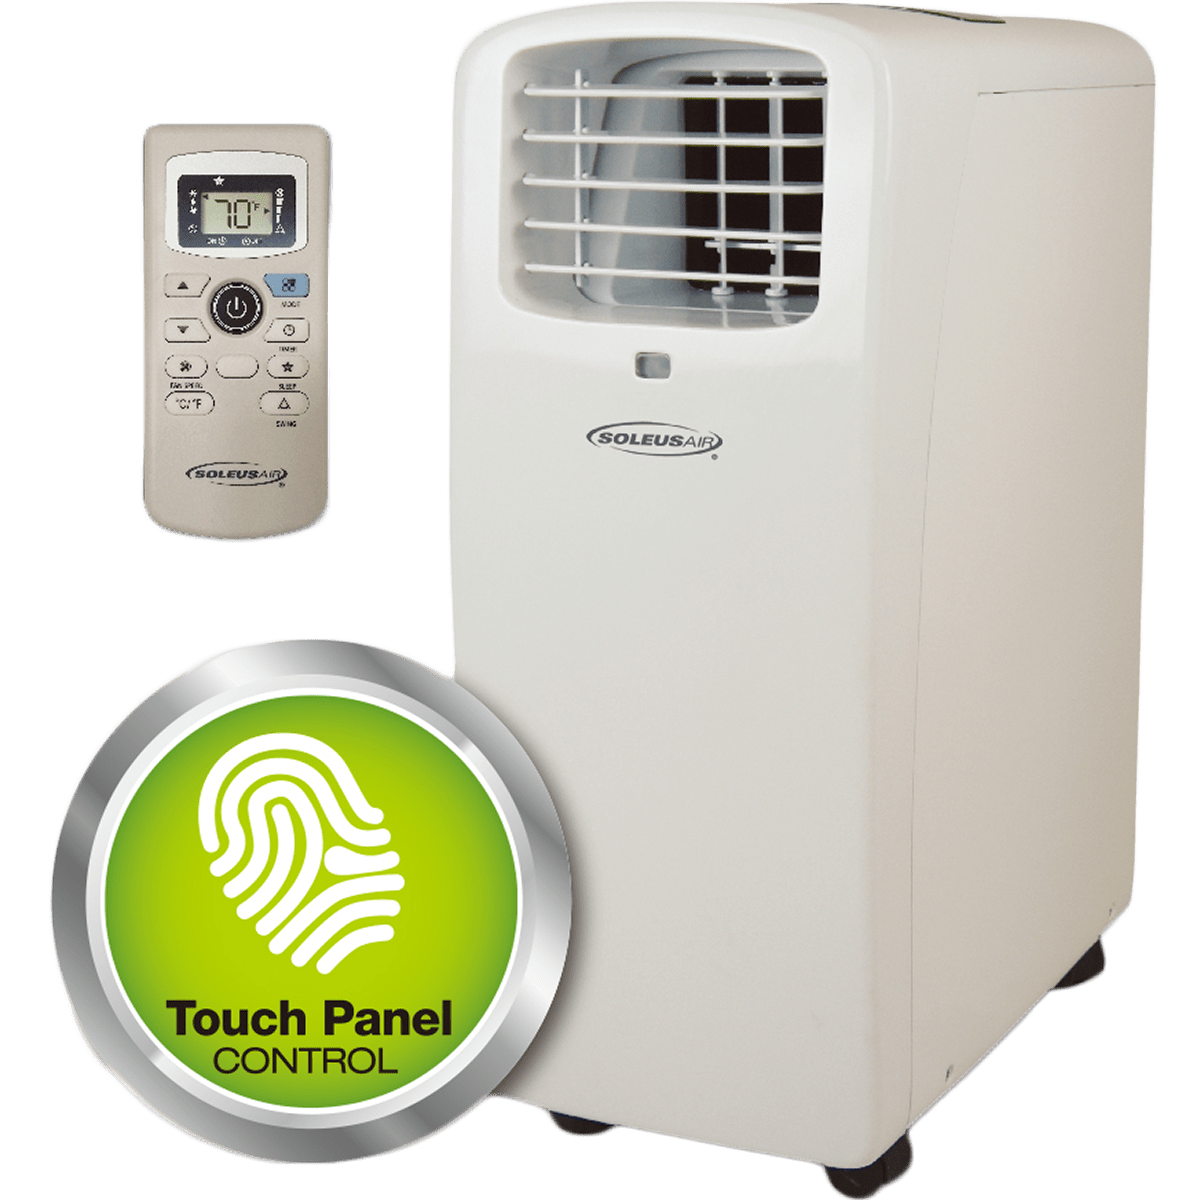 Soleus Air KY120 12,000 BTU Portable Air Conditioner - With Remote